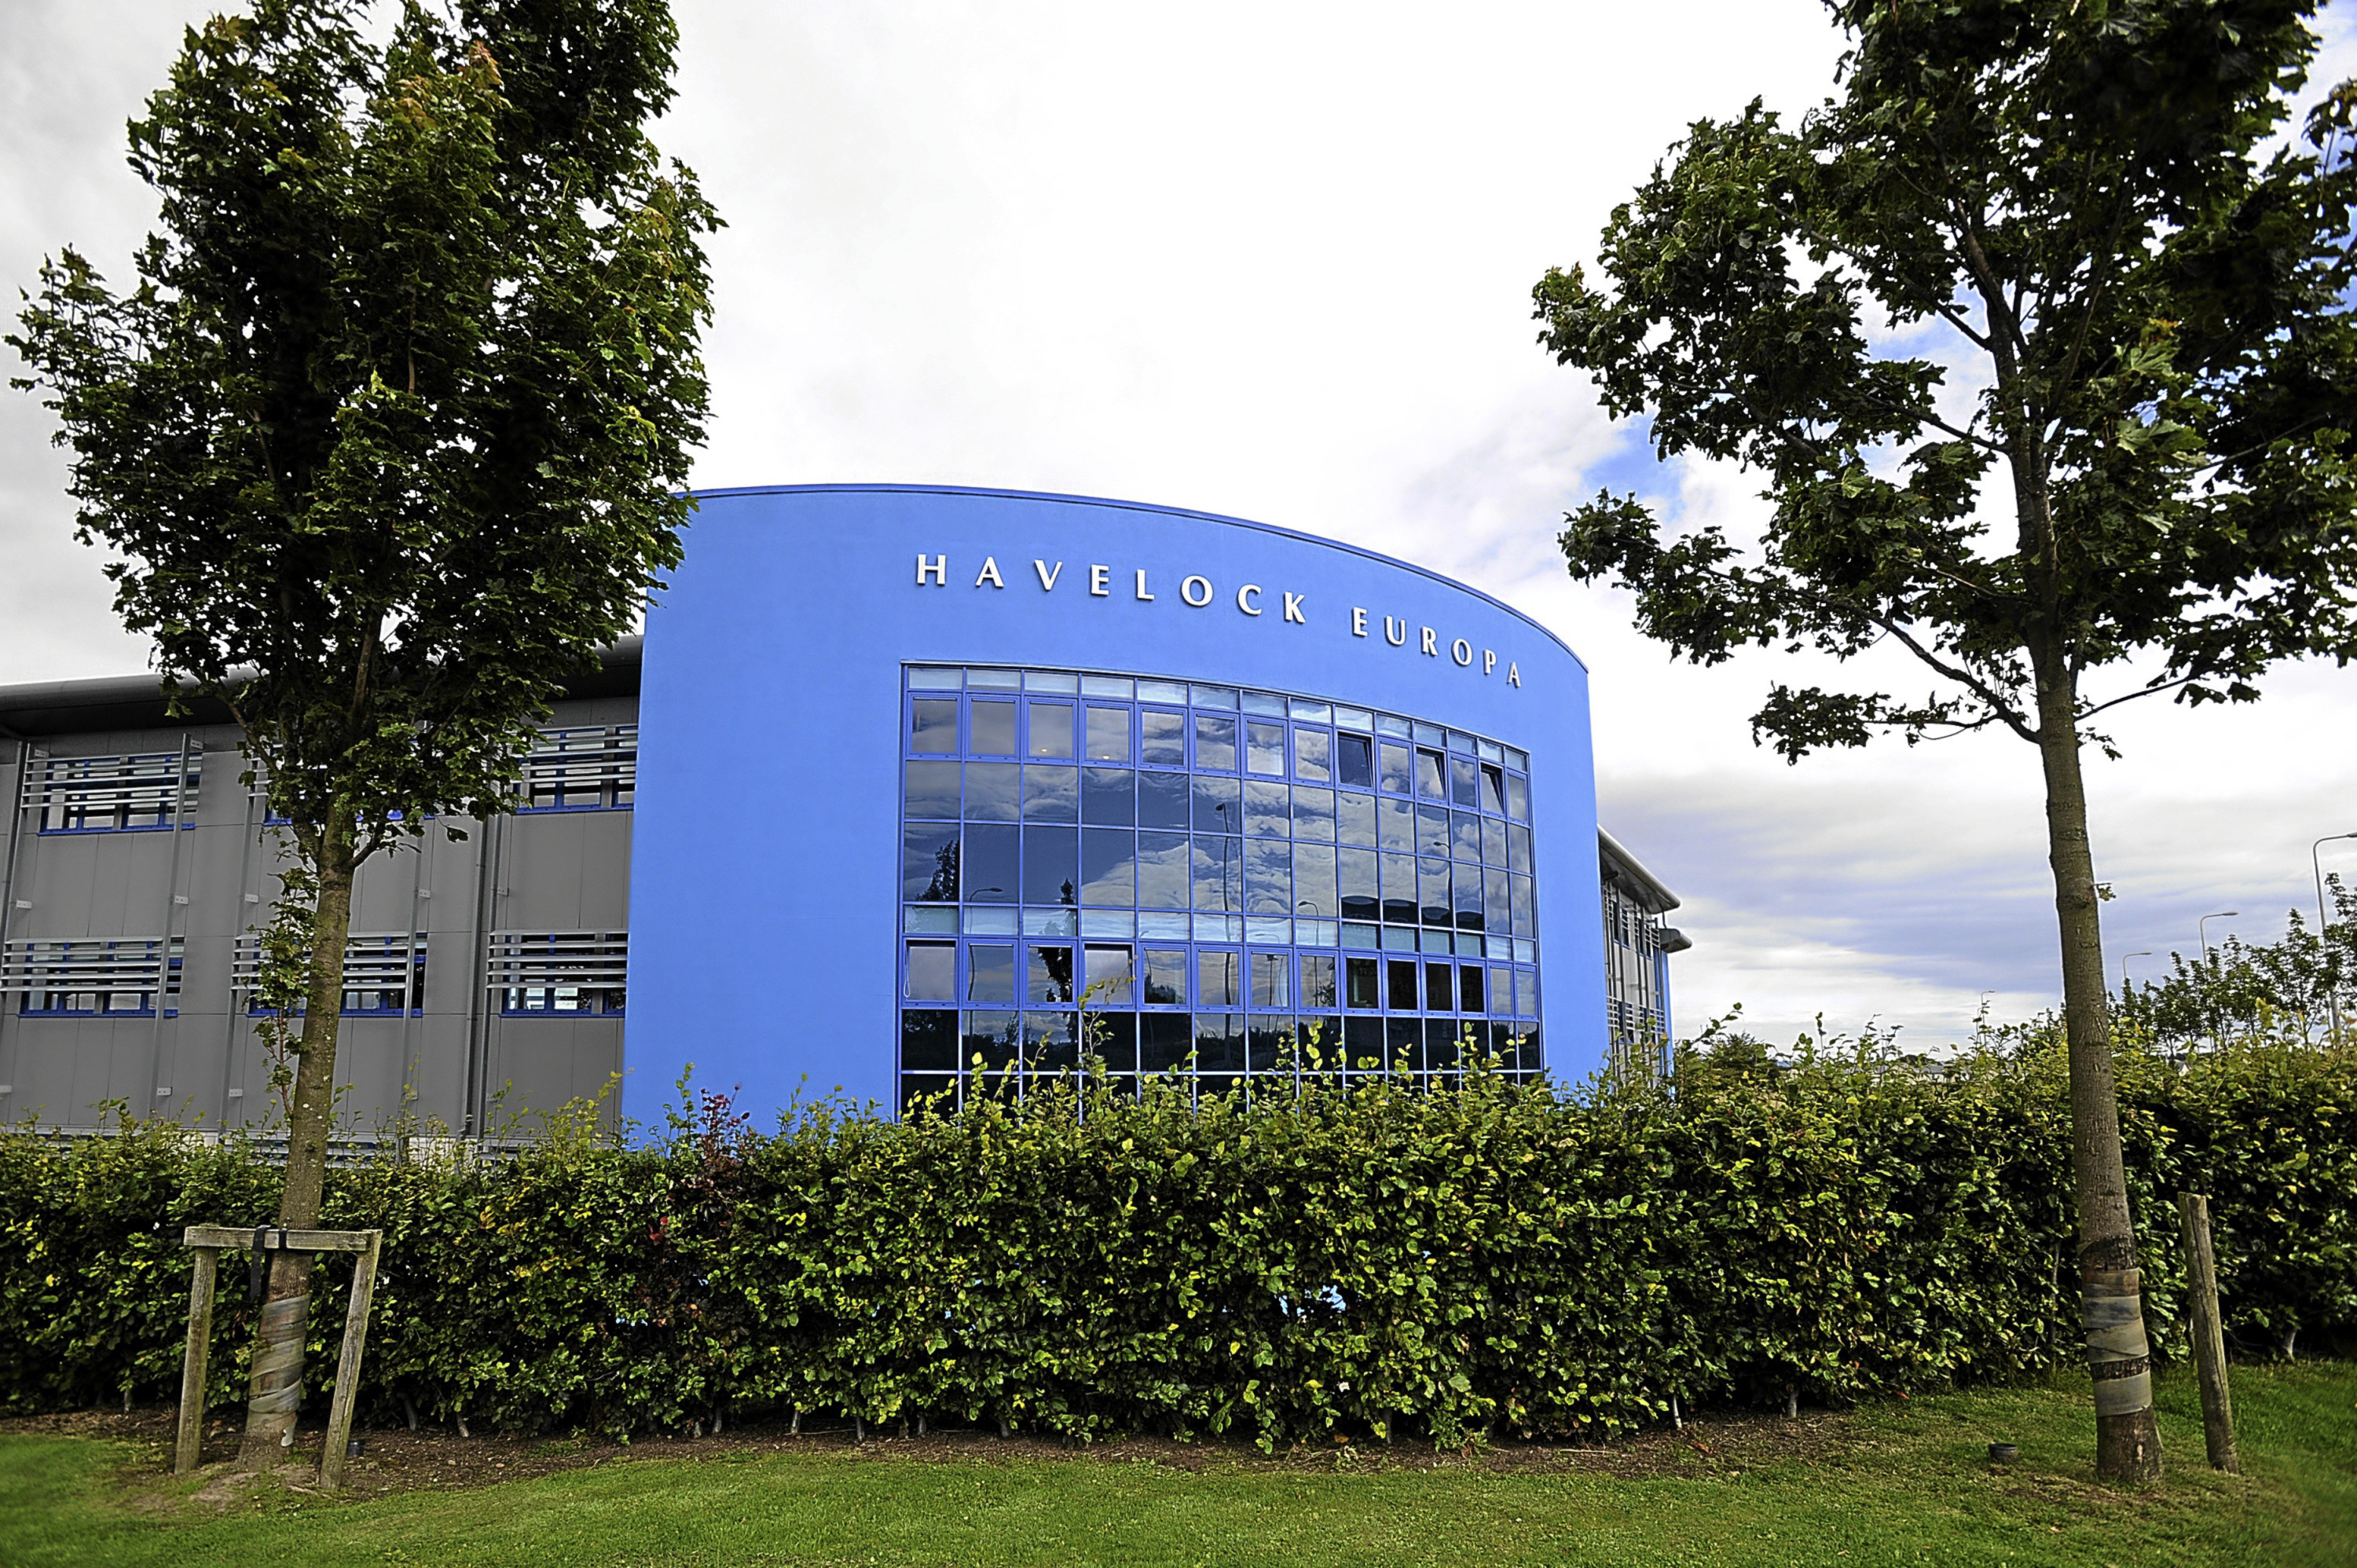 The former Havelock building at John Smith Business Park.